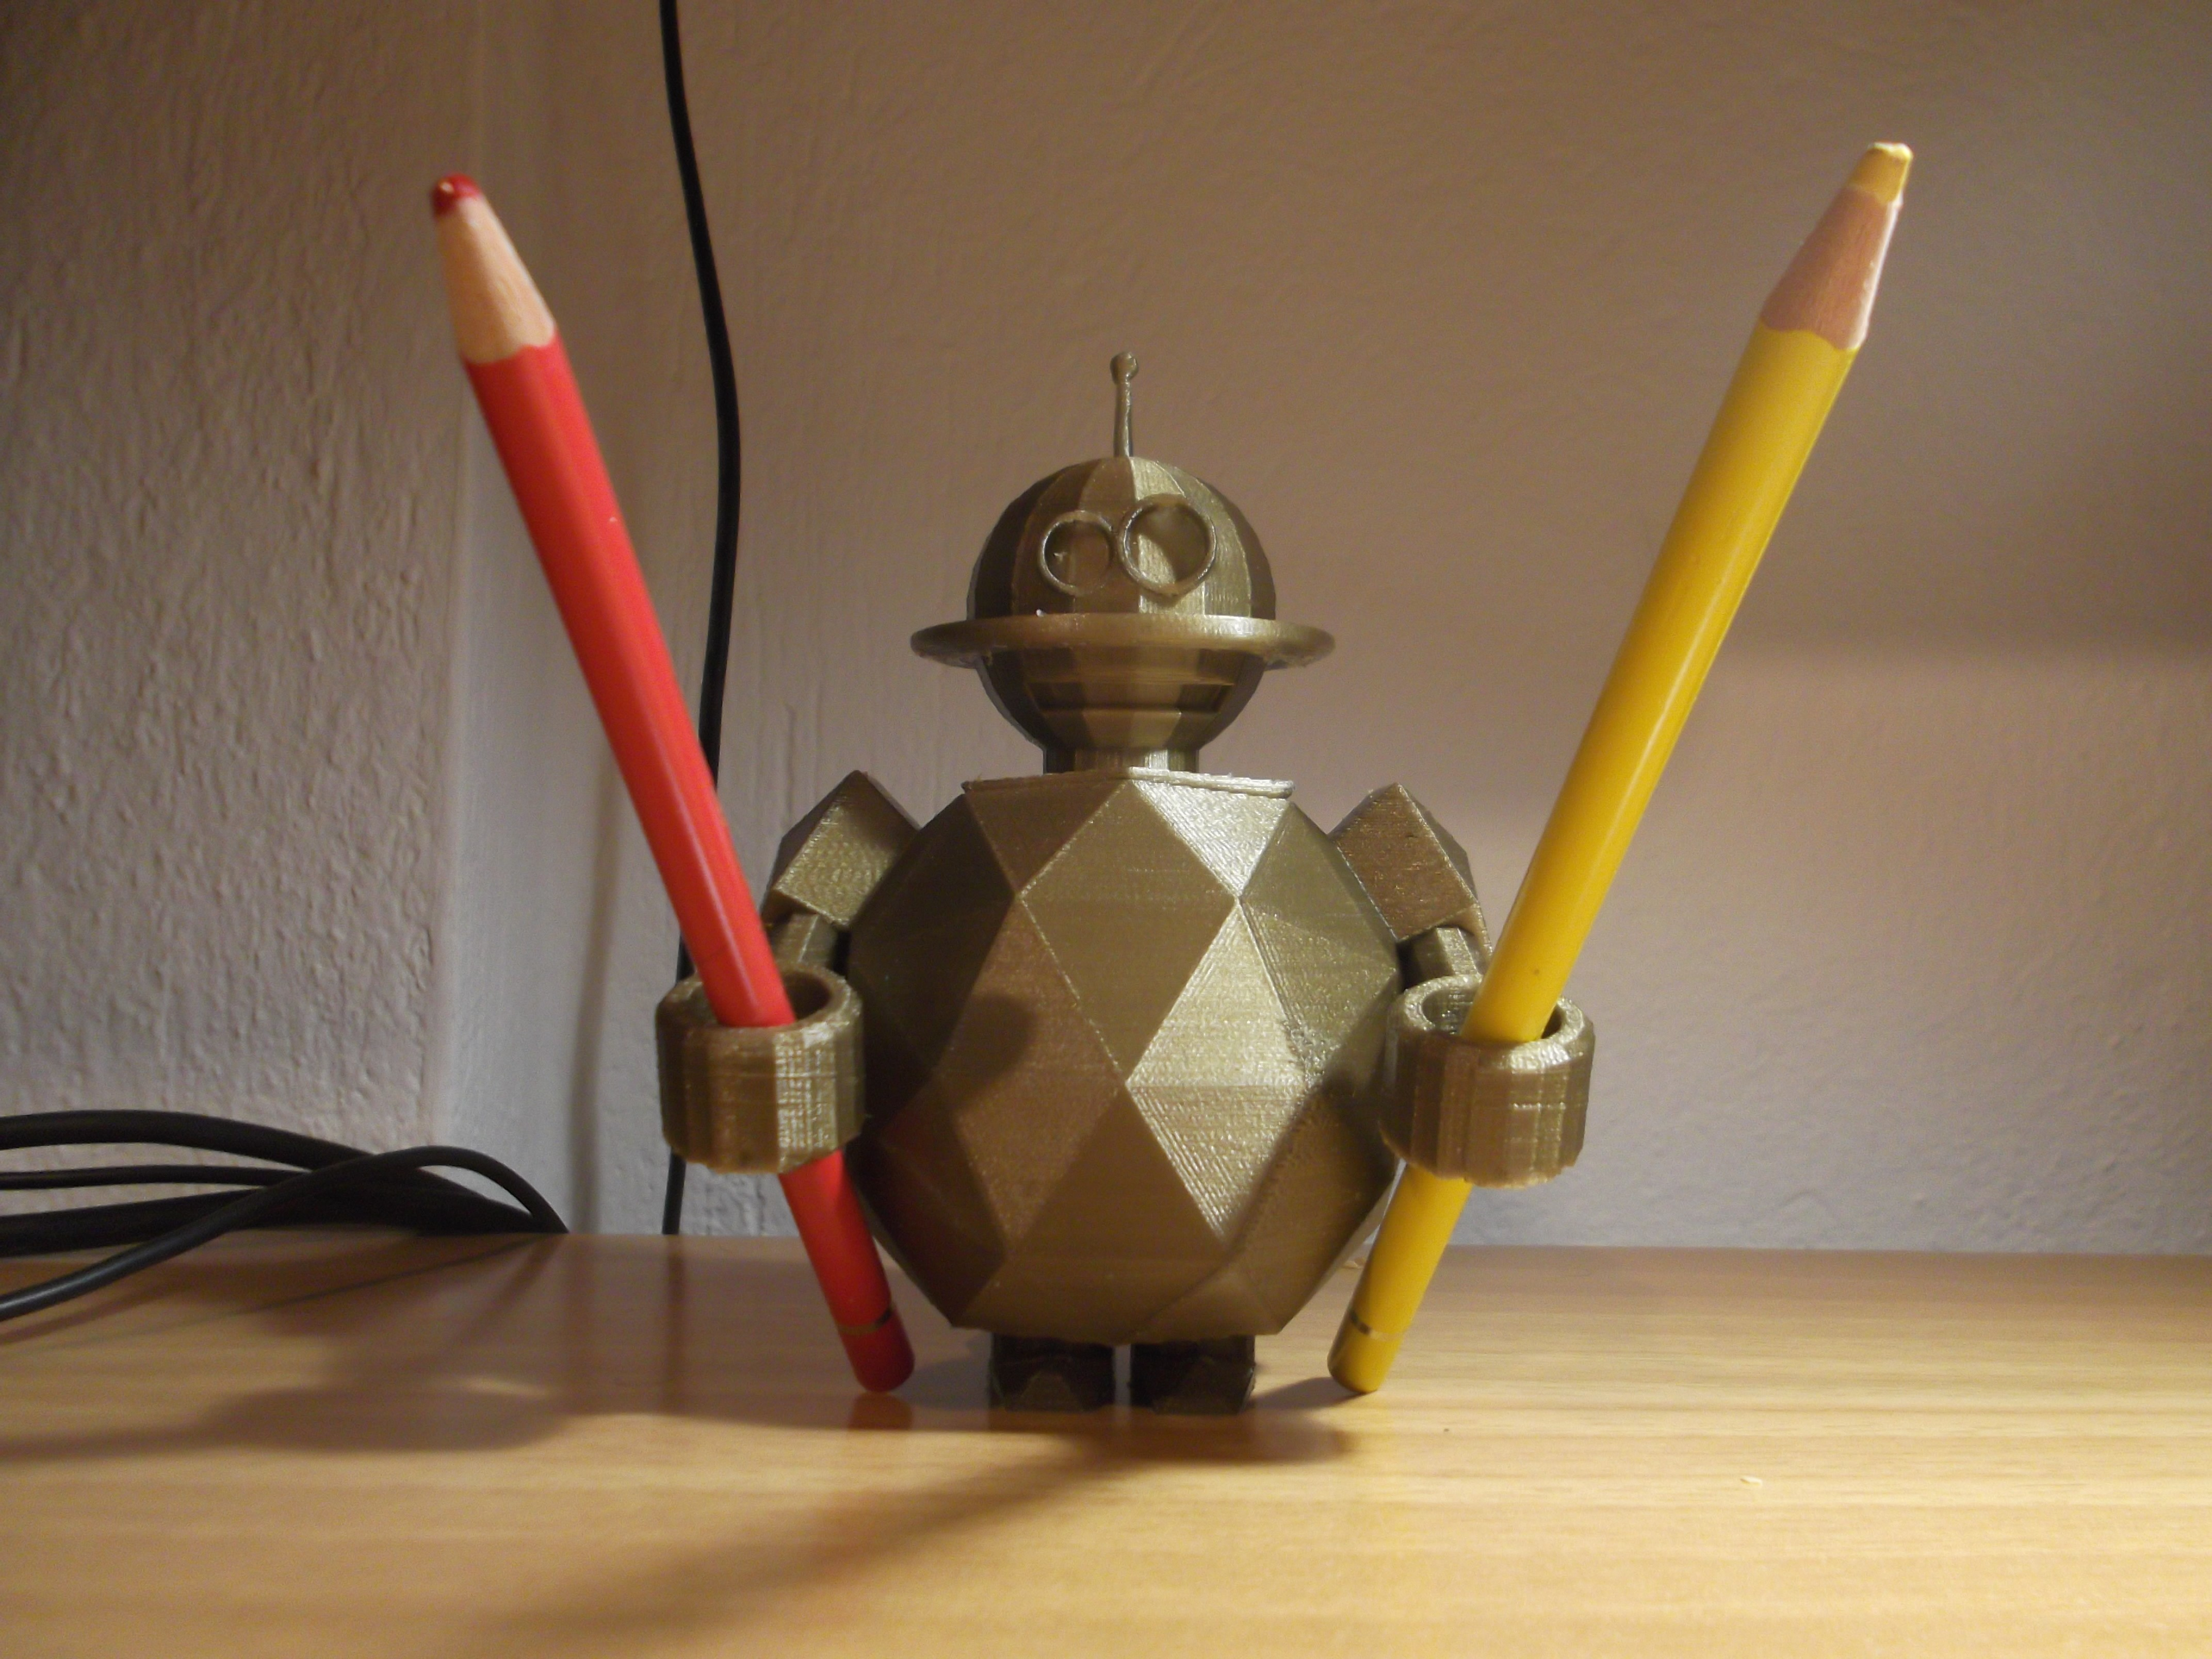 DSCF6131.JPG Download free STL file ROBOT TOOTHBRUSH (OR PEN) HOLDER • Object to 3D print, TED3D